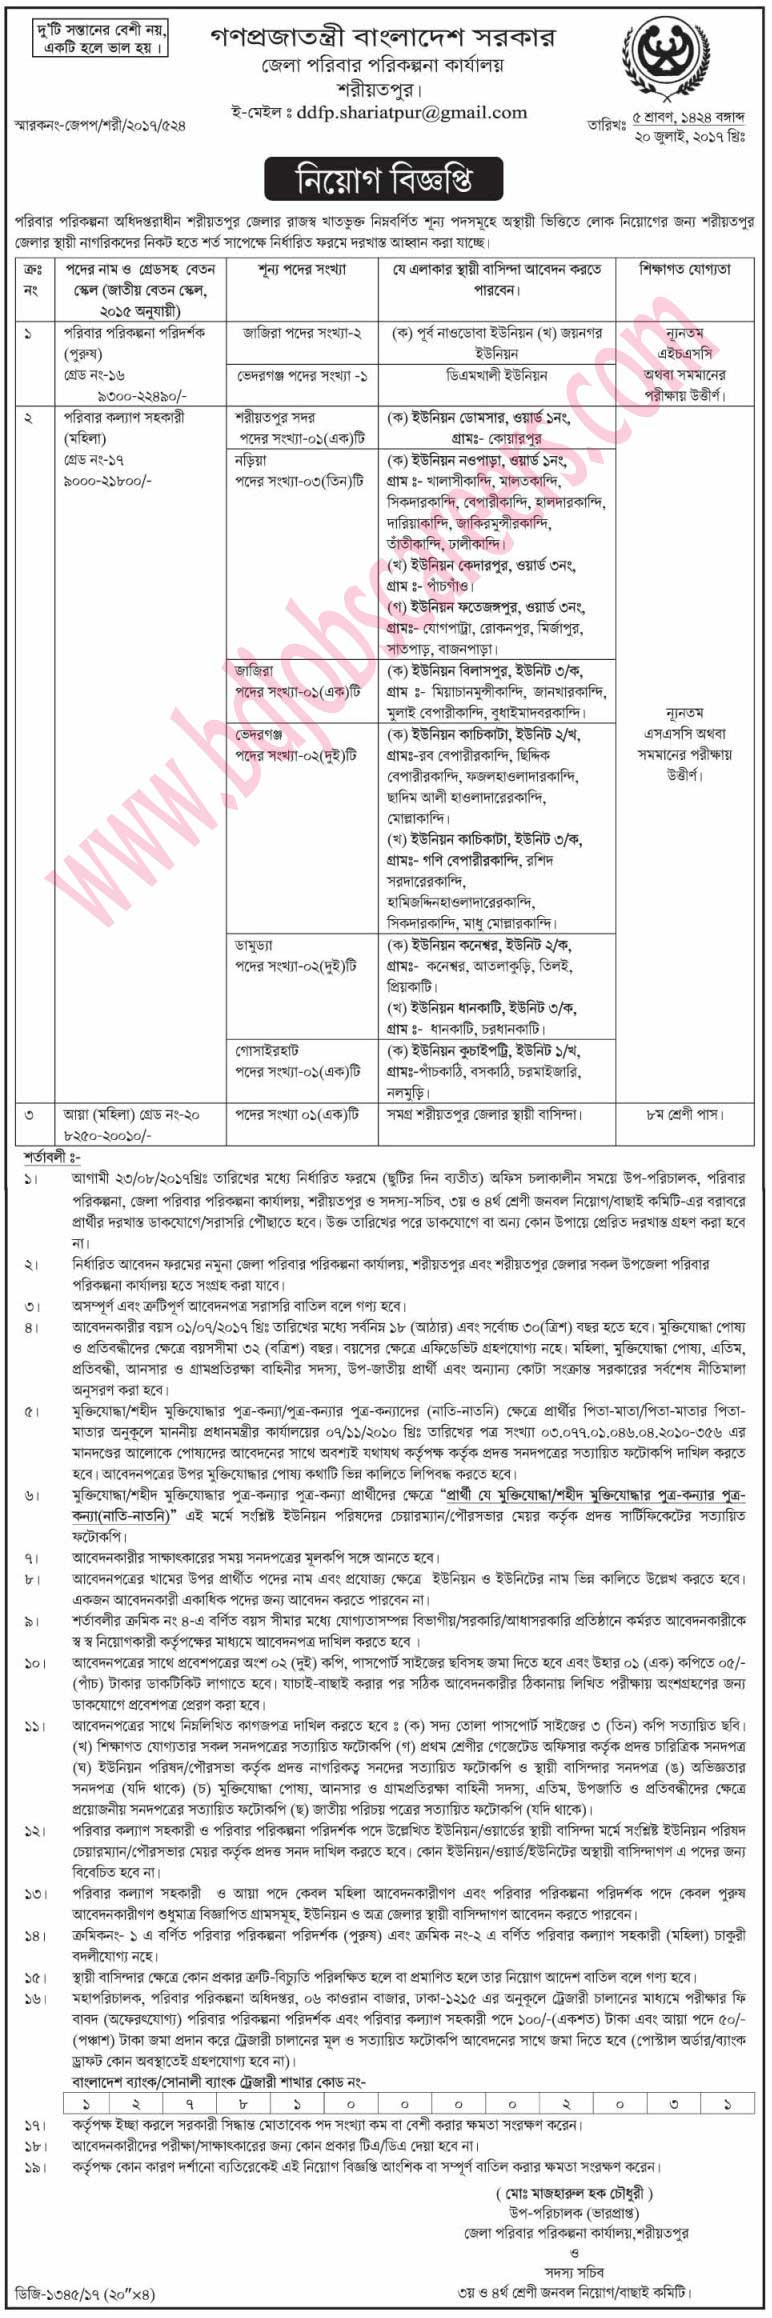 Shariatpur District Family Planning Office Job Circular 2017